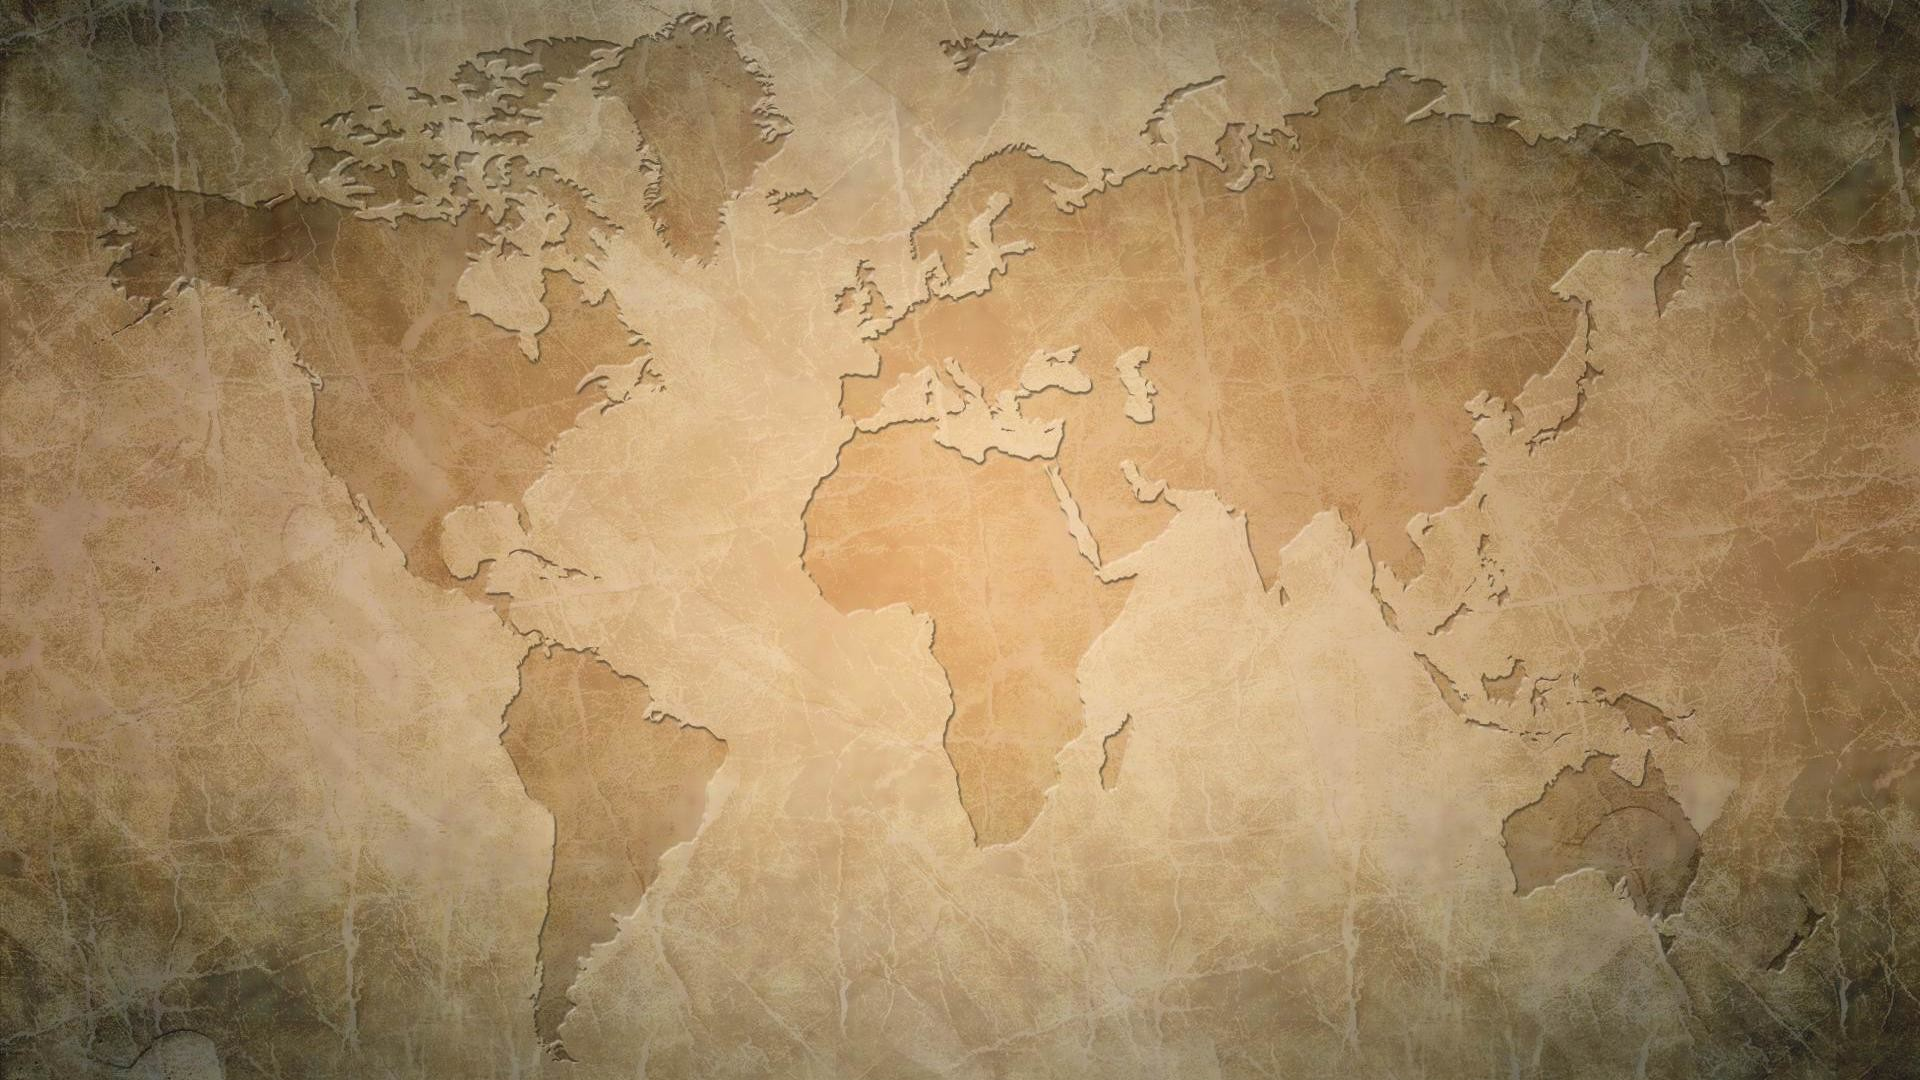 World map desktop wallpaper 54 images 2673x1969 vintage world map wallpaper photo for desktop wallpaper background on other category similar with 1920x1080 black gumiabroncs Choice Image